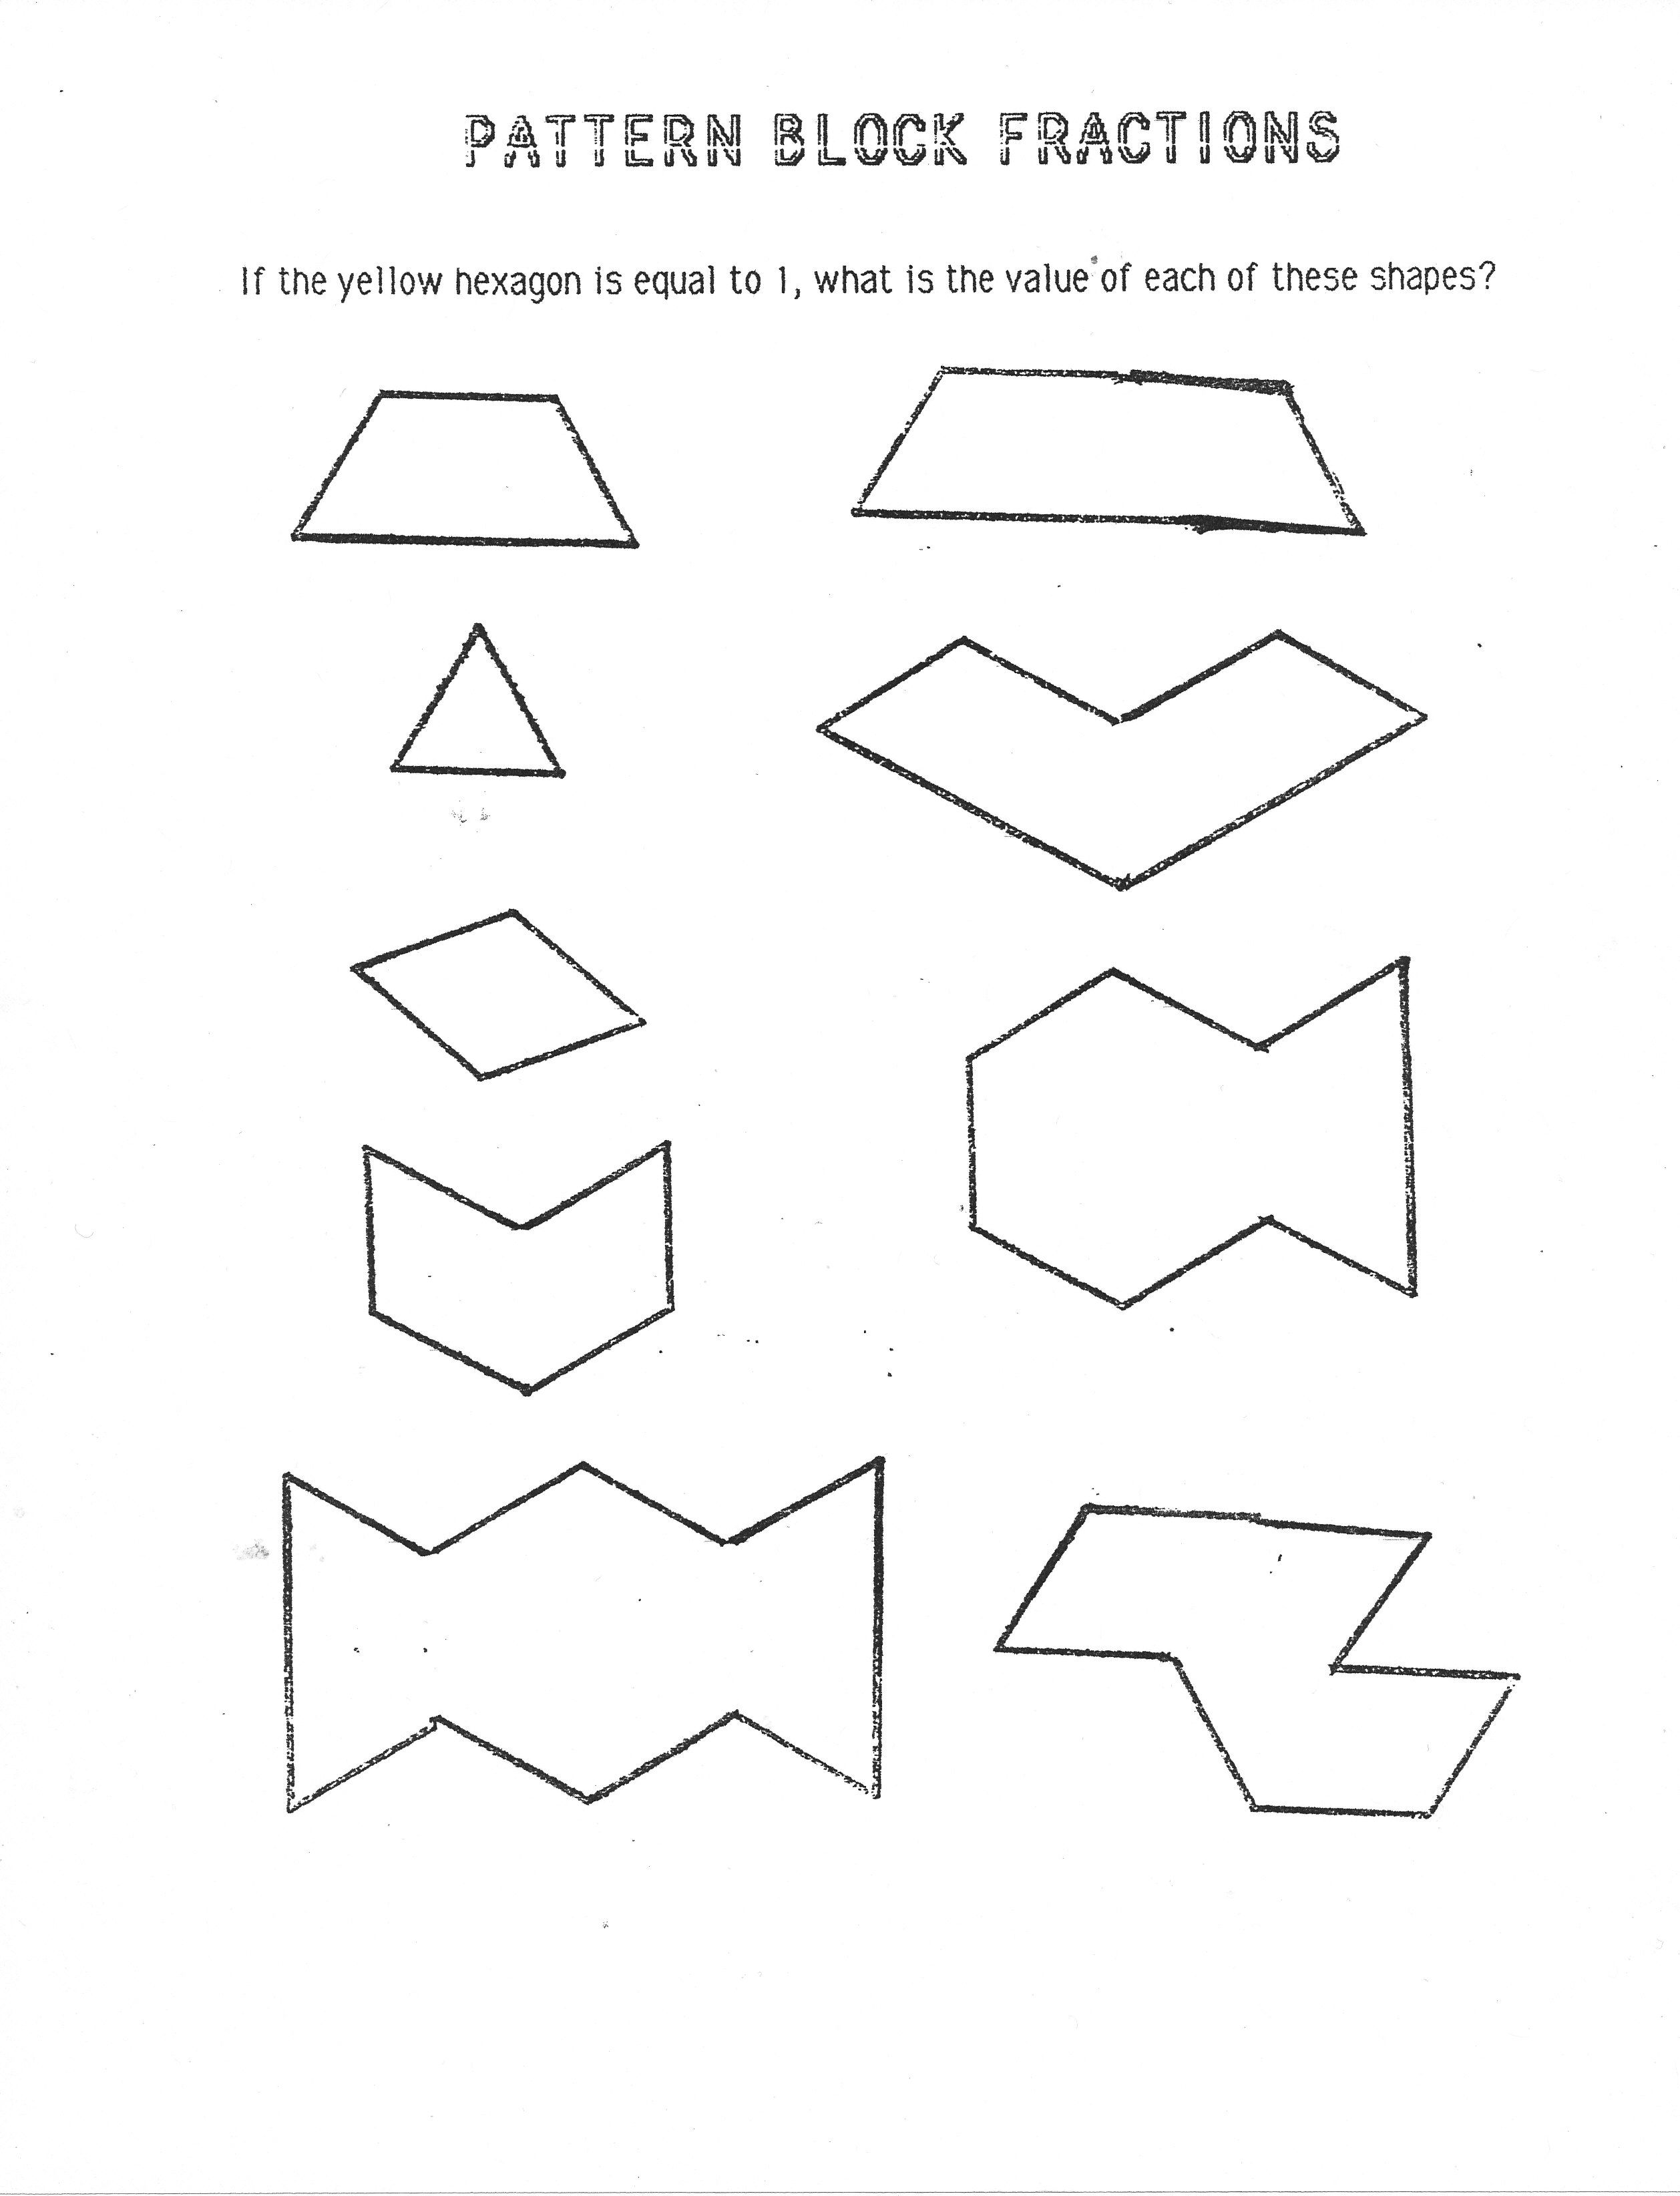 Pattern Block Worksheets 4Th Worksheets for all | Download and ...